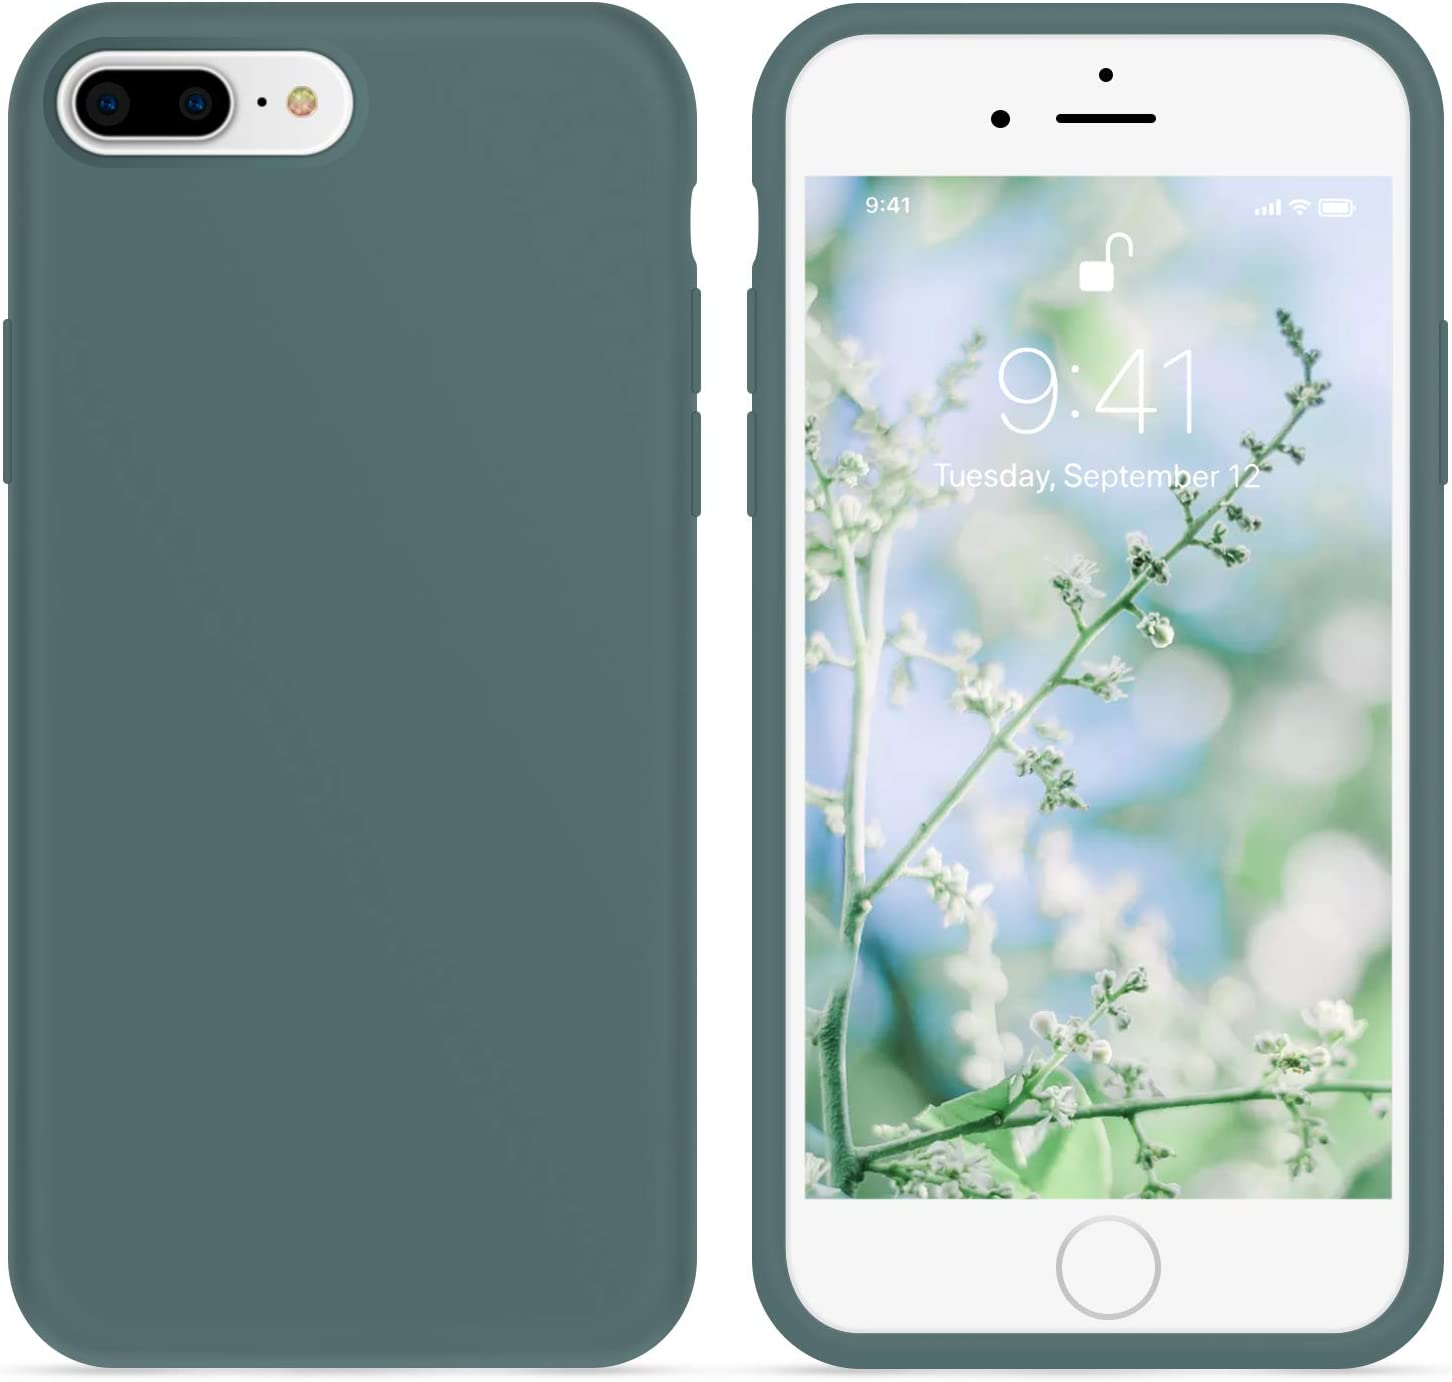 OTOFLY iPhone 8 Plus Case,iPhone 7 Plus Case, [Silky and Soft Touch Series] Premium Soft Silicone Rubber Full-Body Protective Bumper Case Compatible with iPhone 7/8 Plus (Pine Green)